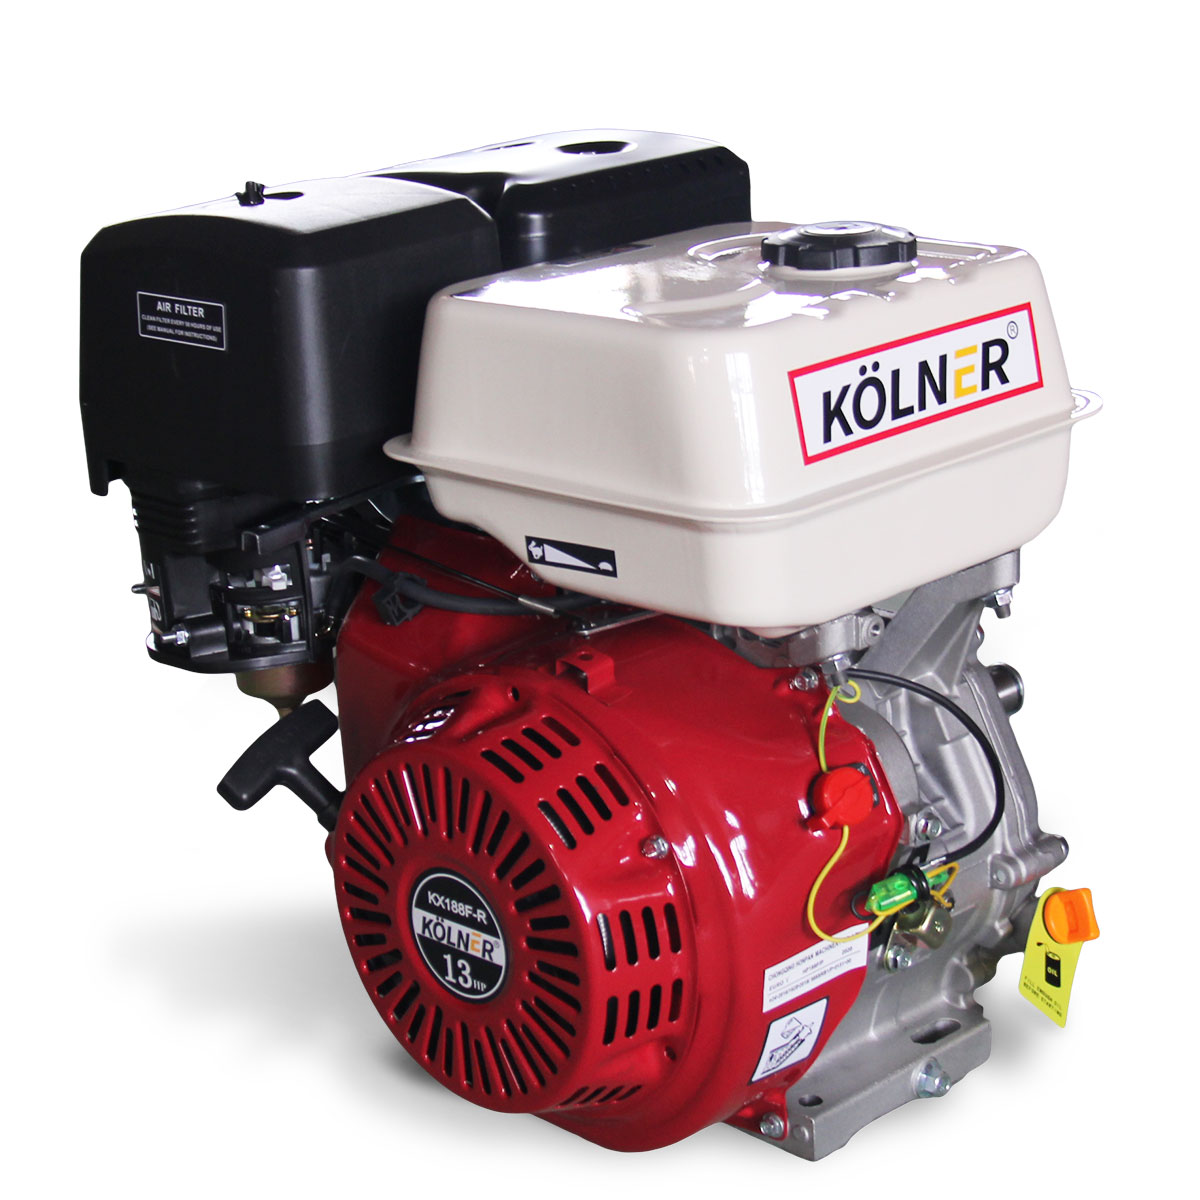 Kolner 13hp 25.4mm Horizontal Key Shaft Q Type Petrol Engine - Recoil Start